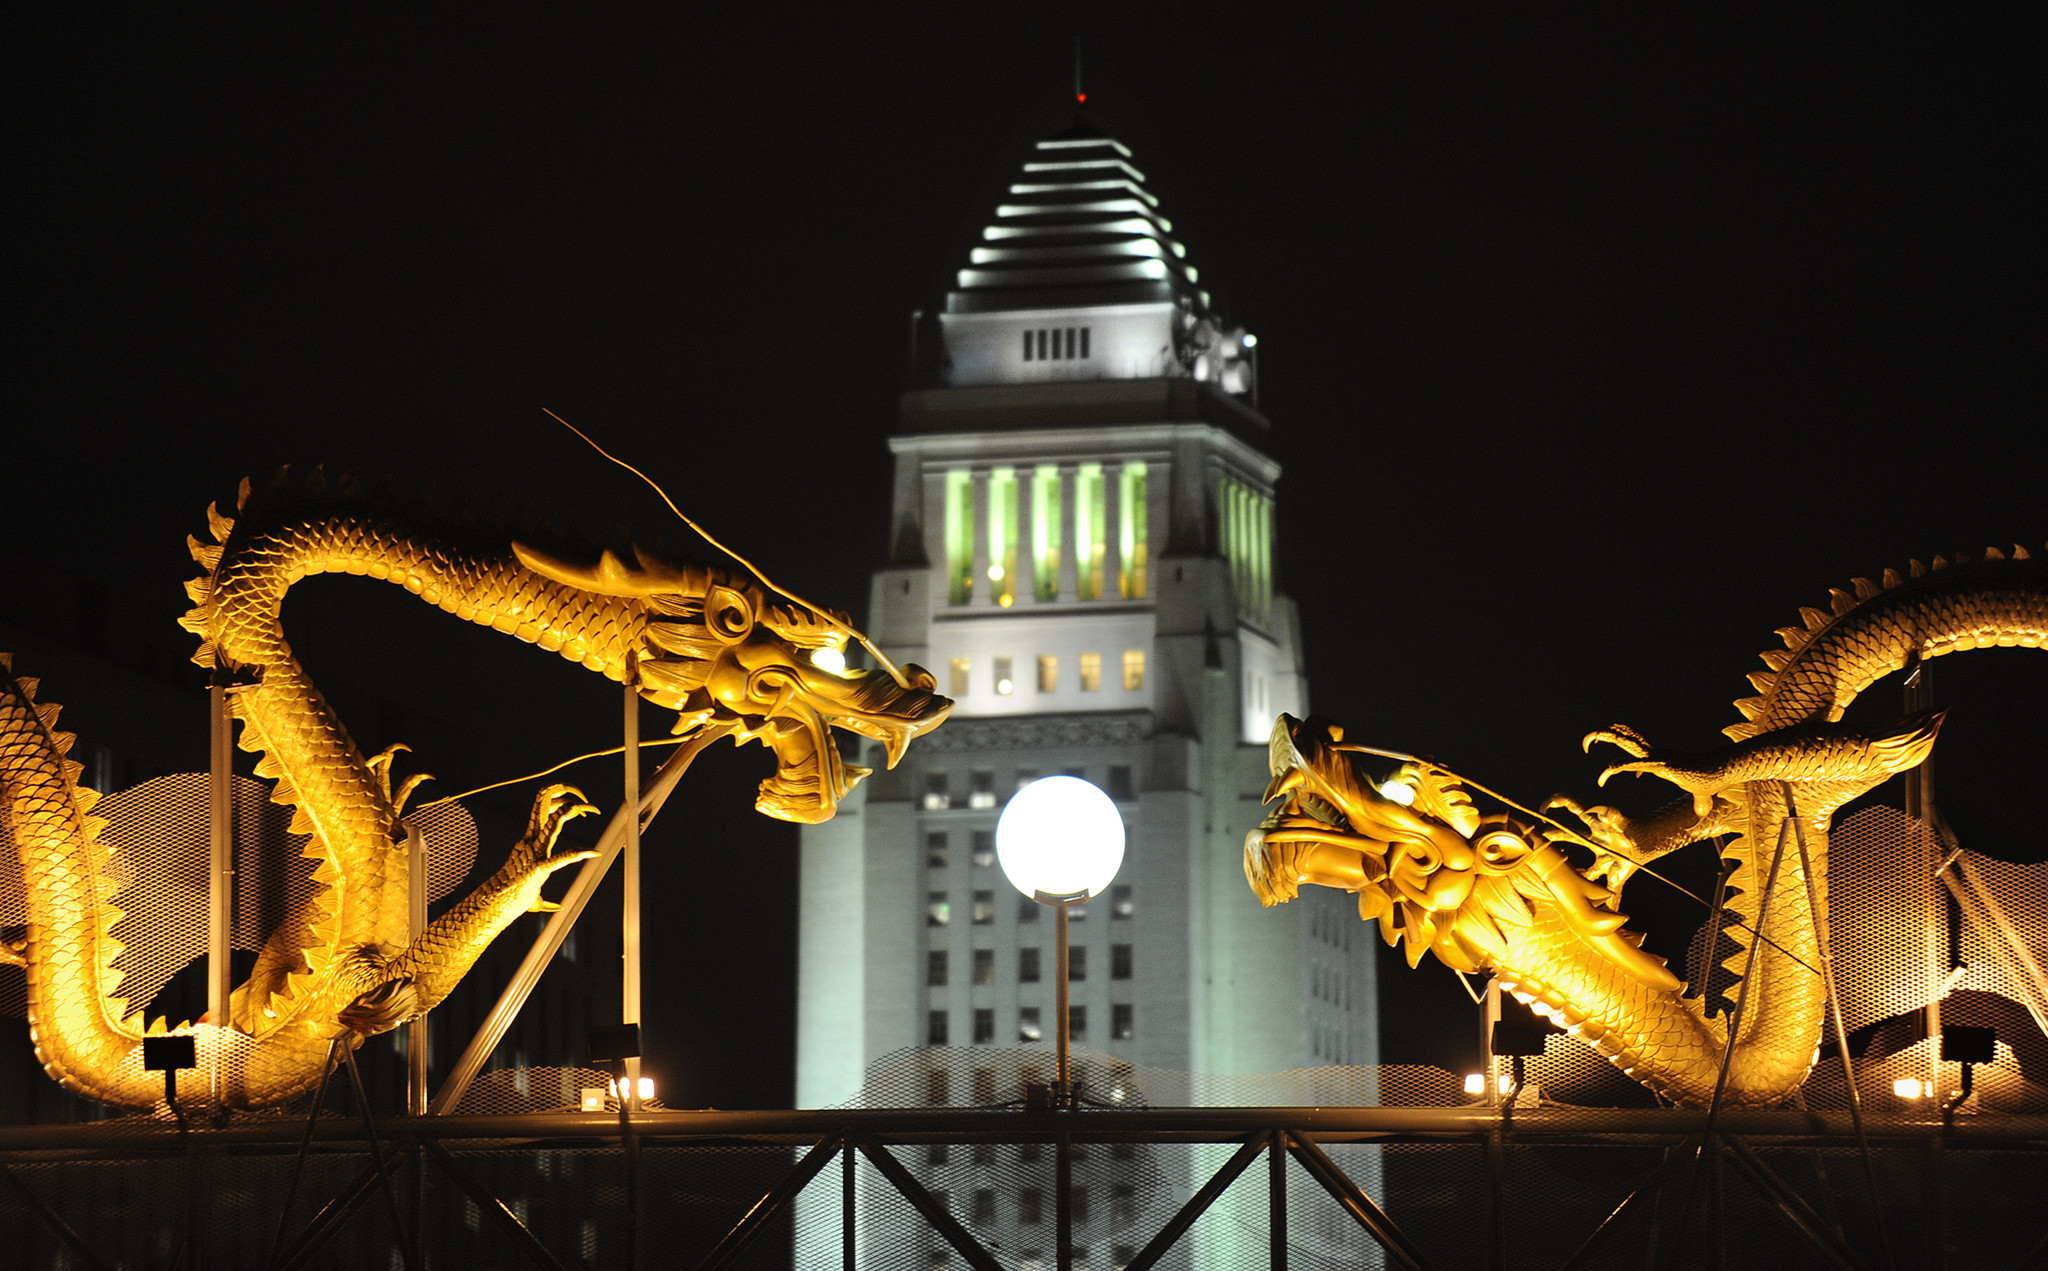 Los Angeles City Hall framed by dragon statues in Chinatown.